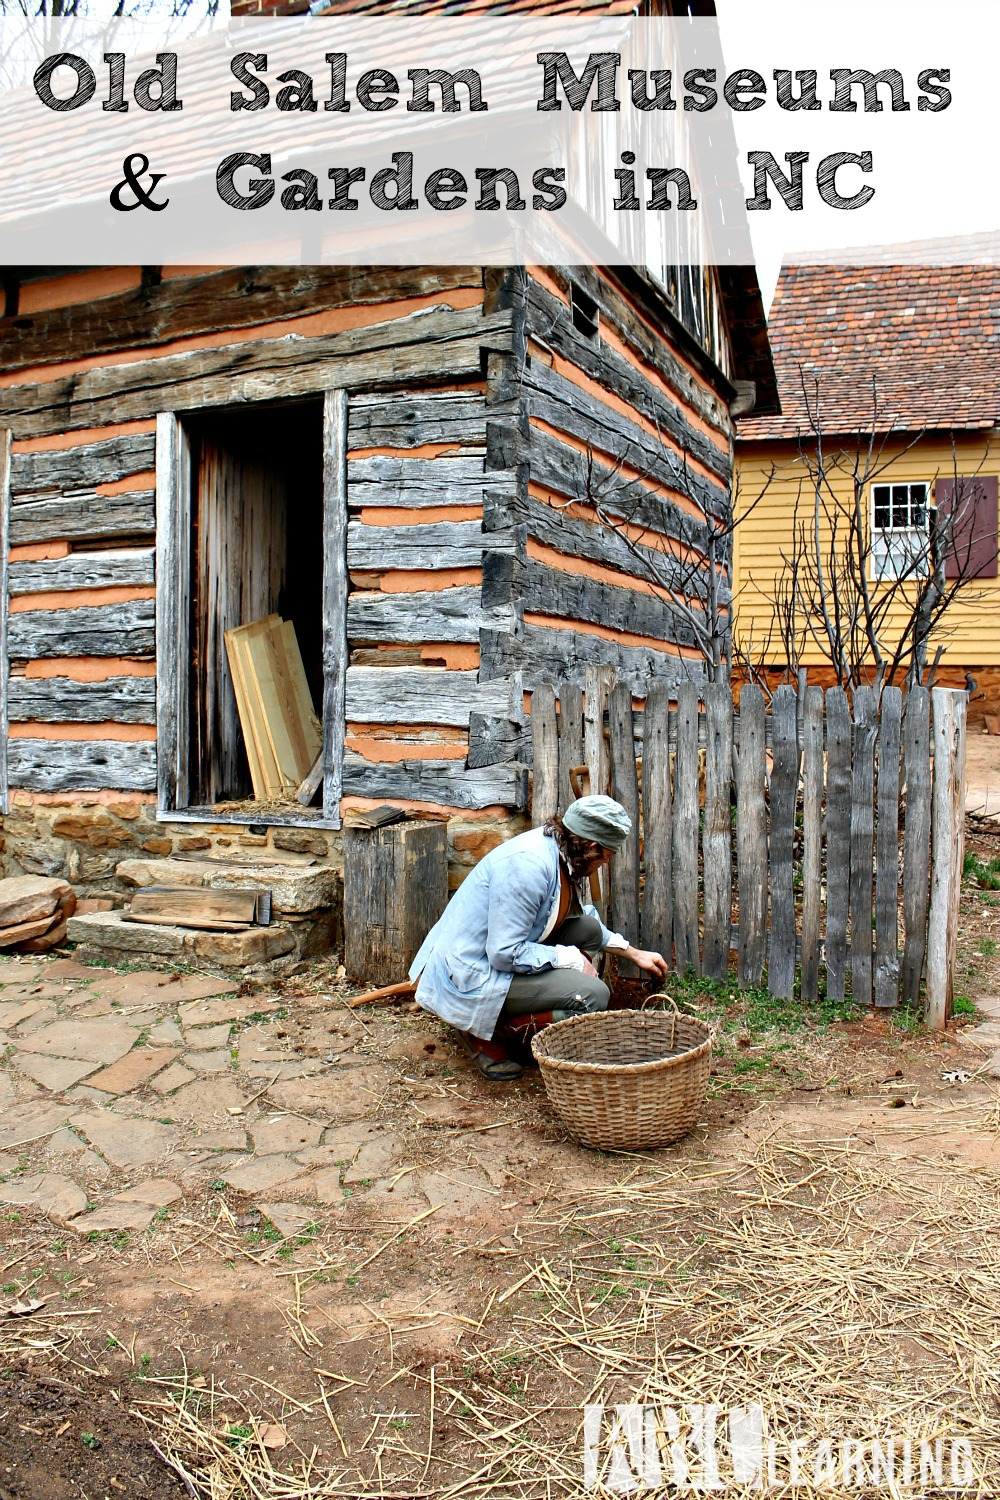 Visiting Old Salem Museums & Gardens in NC - abccreativelearning.com